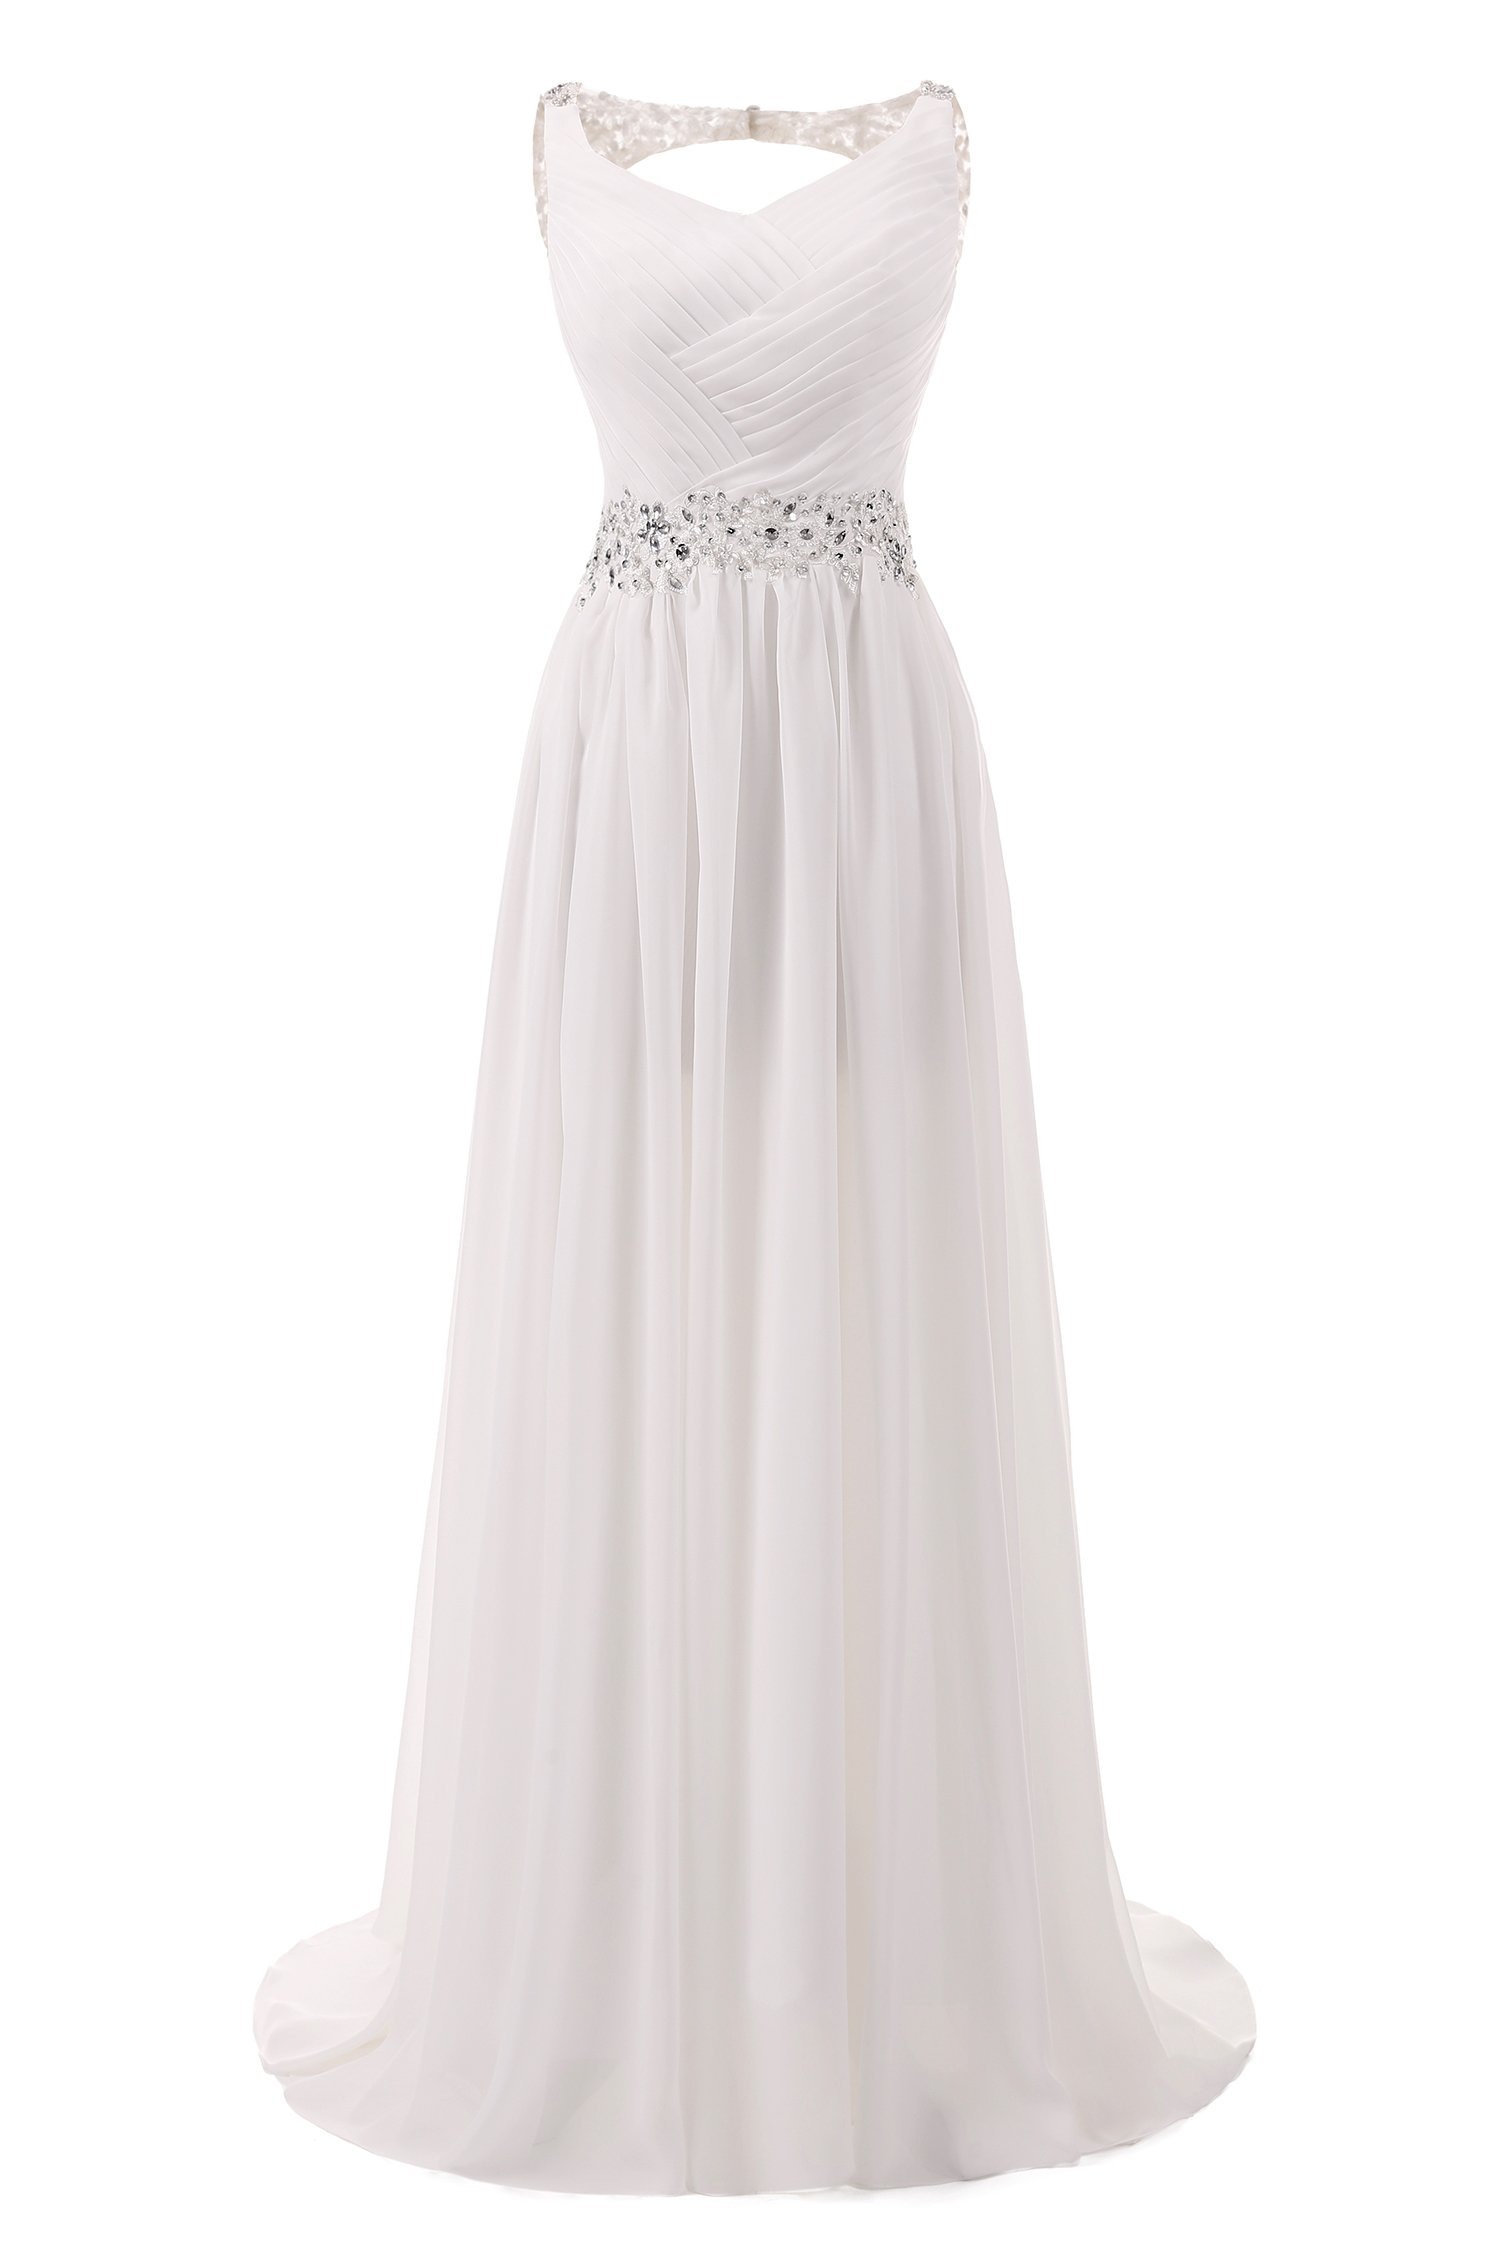 AbaoWedding Women's Chiffon V Neck Shoulder Straps Long Wedding Evening Dress Size 16 Ivory